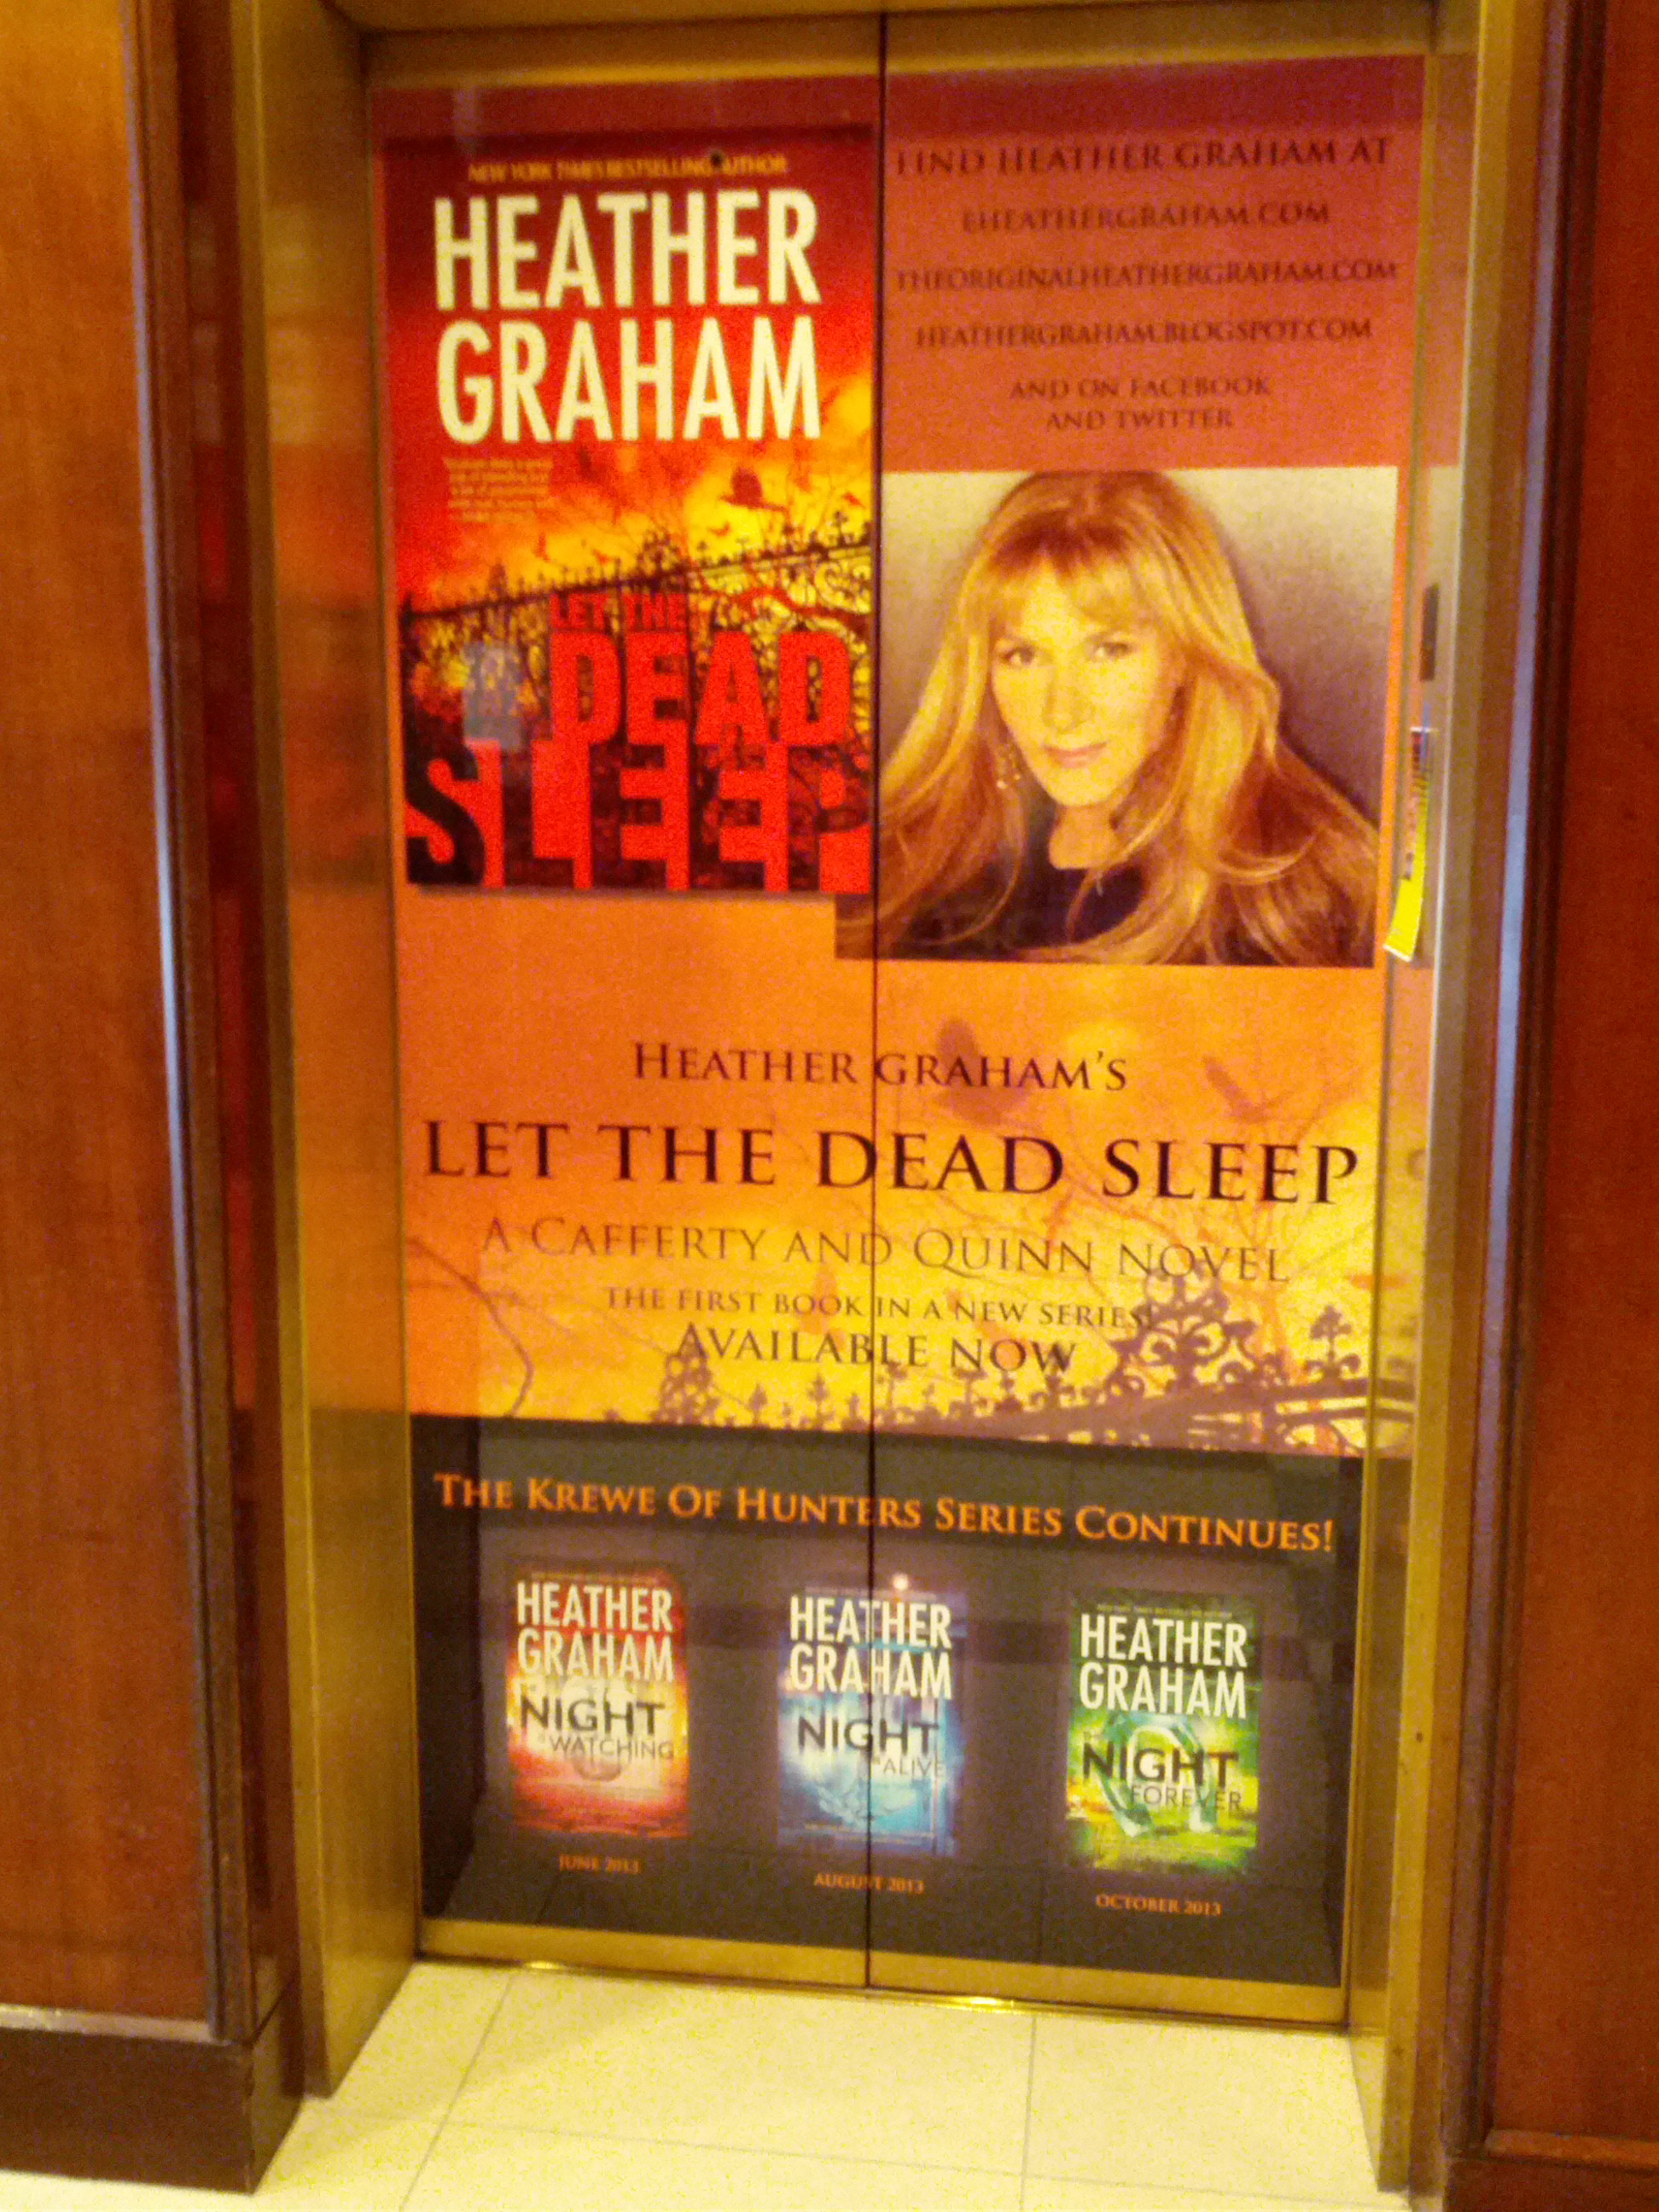 Elevator doors branded with Heather Graham image and books